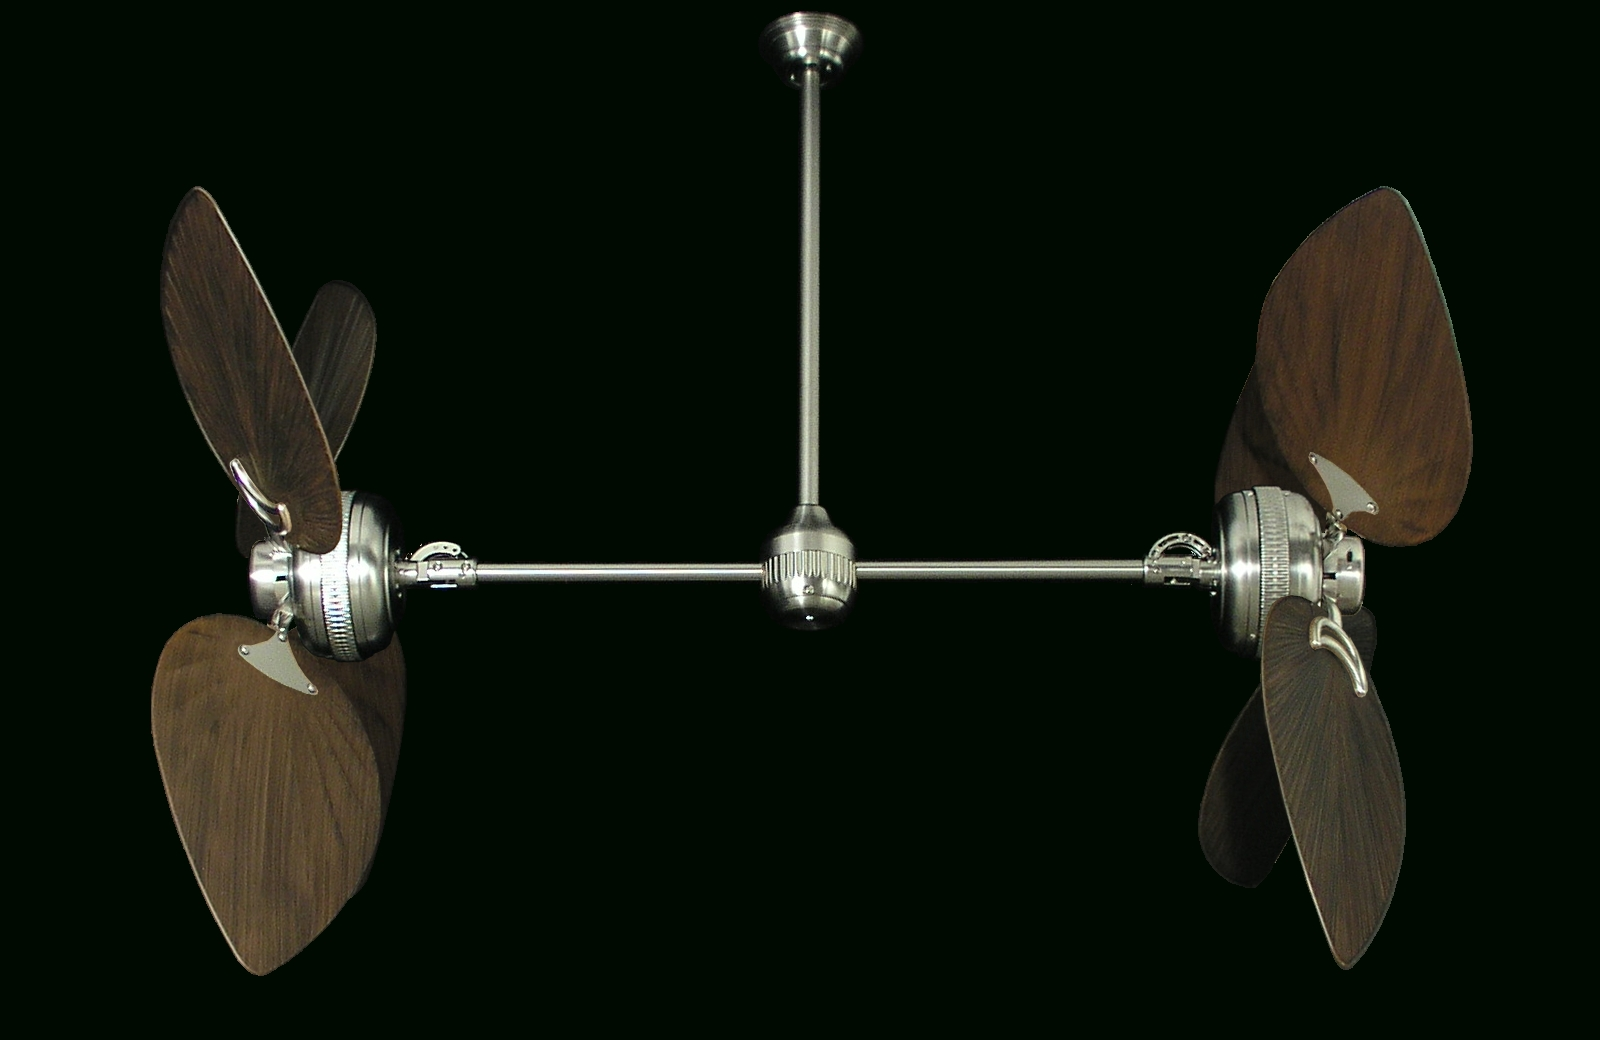 Tropical Outdoor Ceiling Fans Regarding Well Known Ceiling: Astounding Dual Outdoor Ceiling Fan White Dual Fans Ceiling (View 14 of 20)